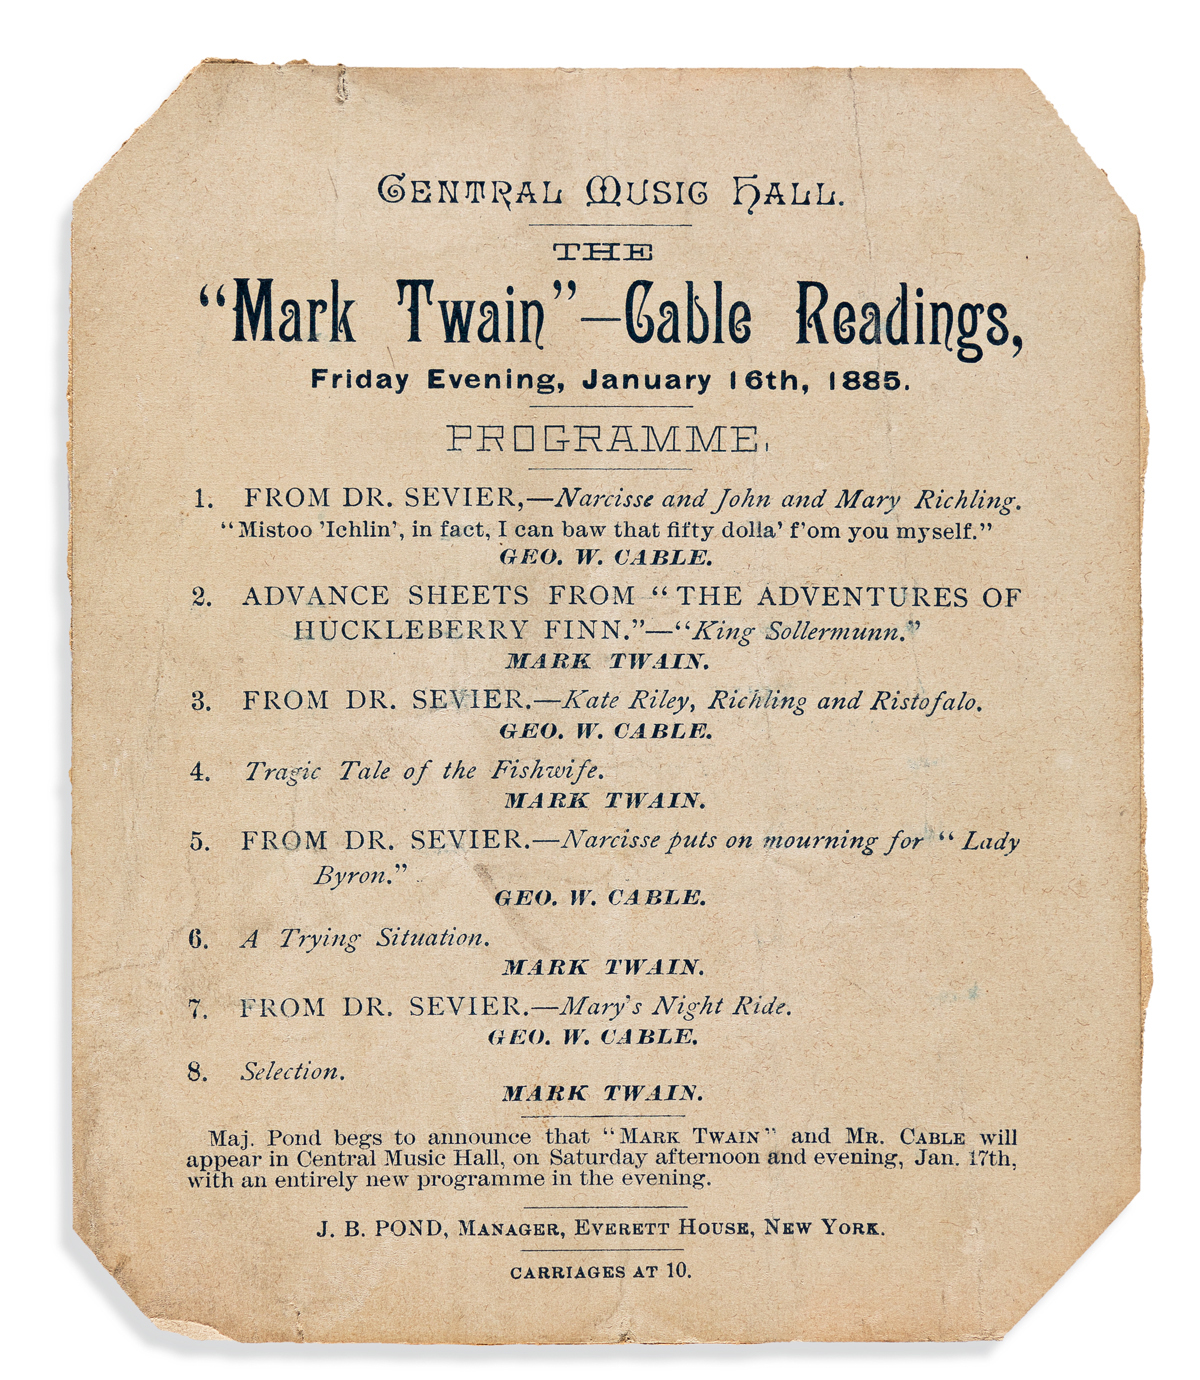 (TWAIN, MARK.) The Mark Twain - Cable Readings [...] Programme.